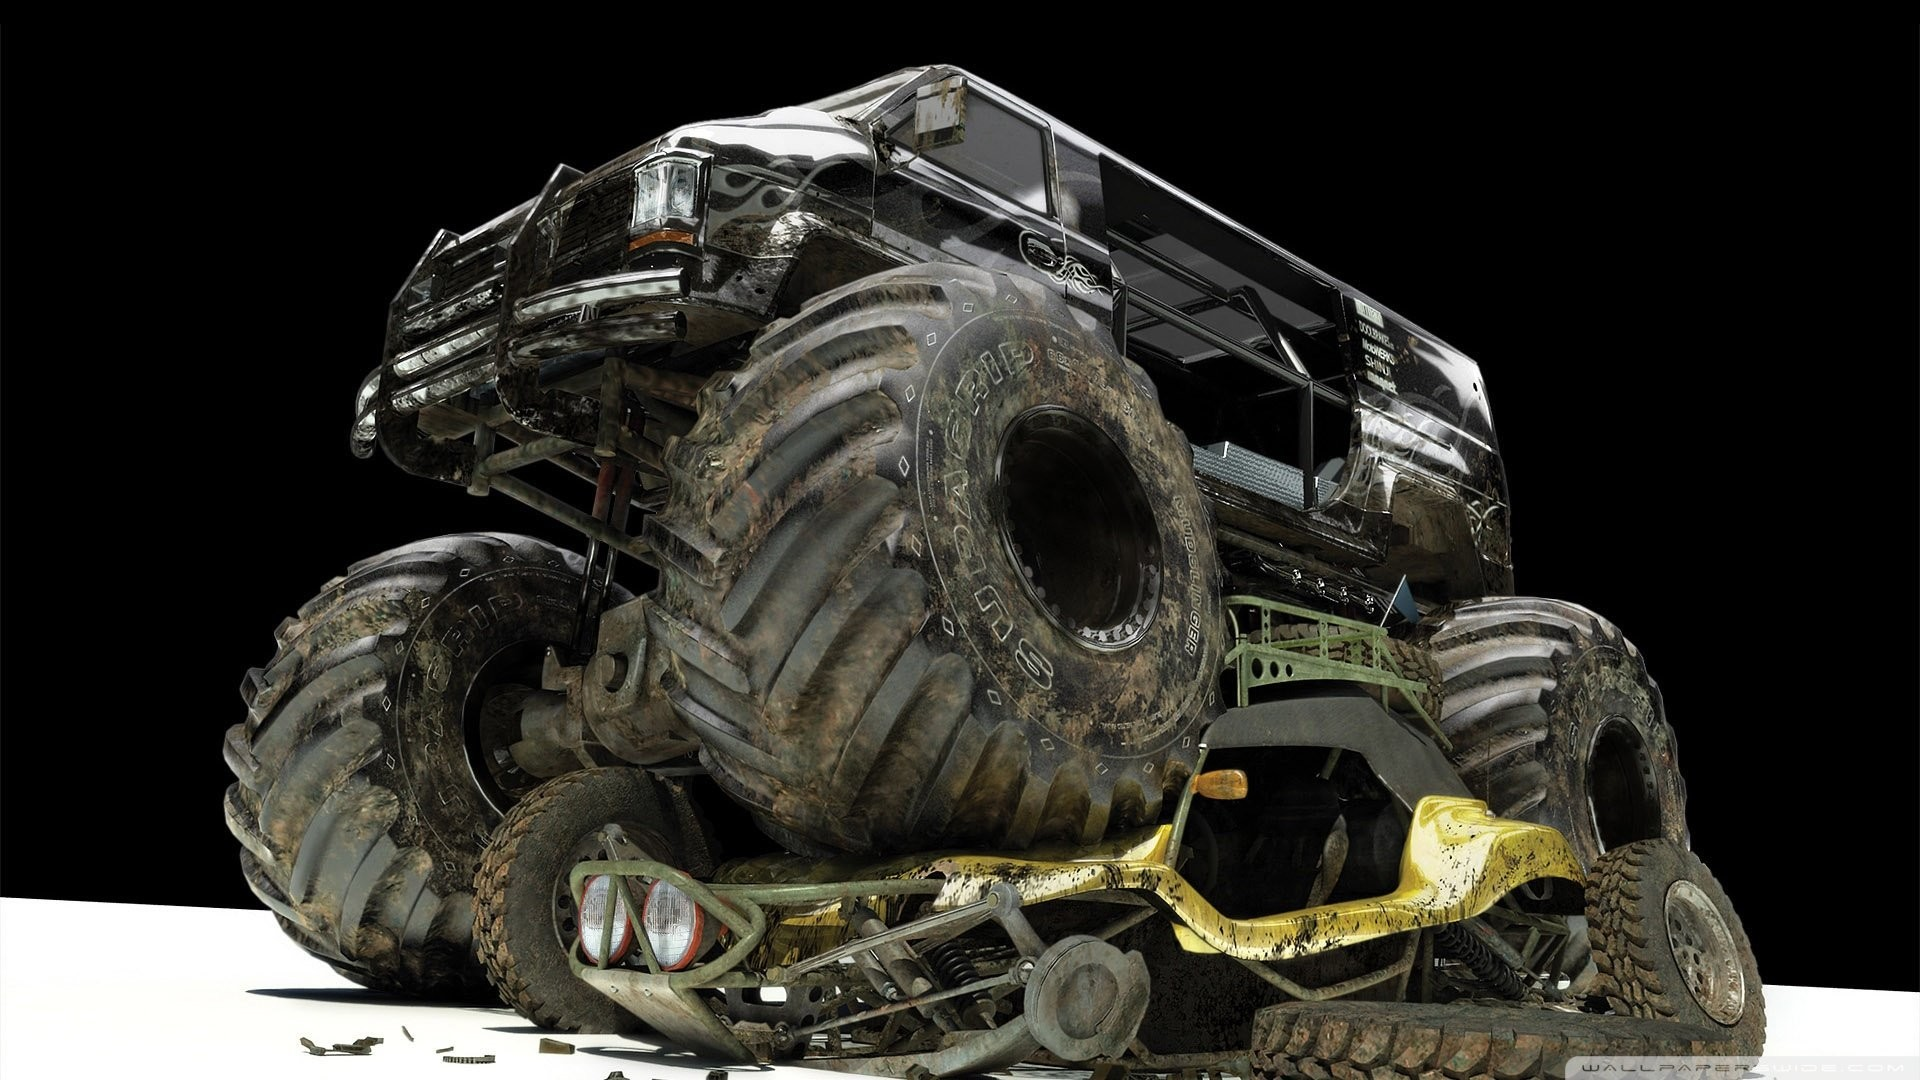 Monster Truck Wallpaper Phone 2380066 Hd Wallpaper Backgrounds Download